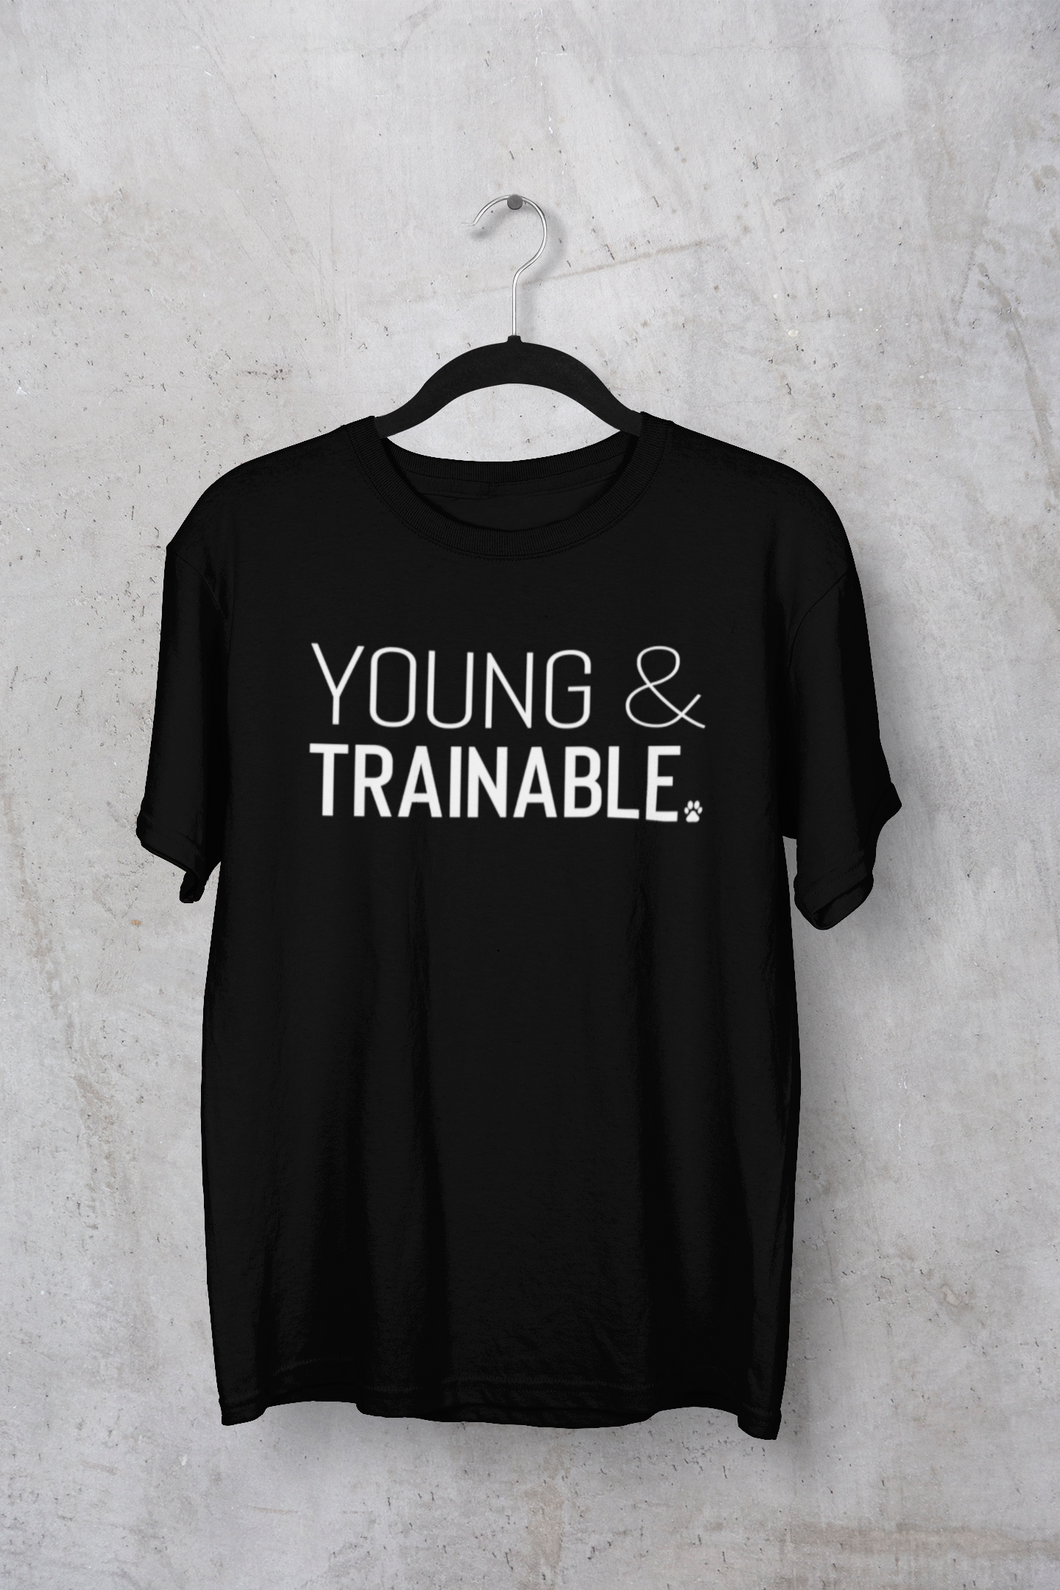 Young & Trainable Men's/Unisex or Women's T-shirt